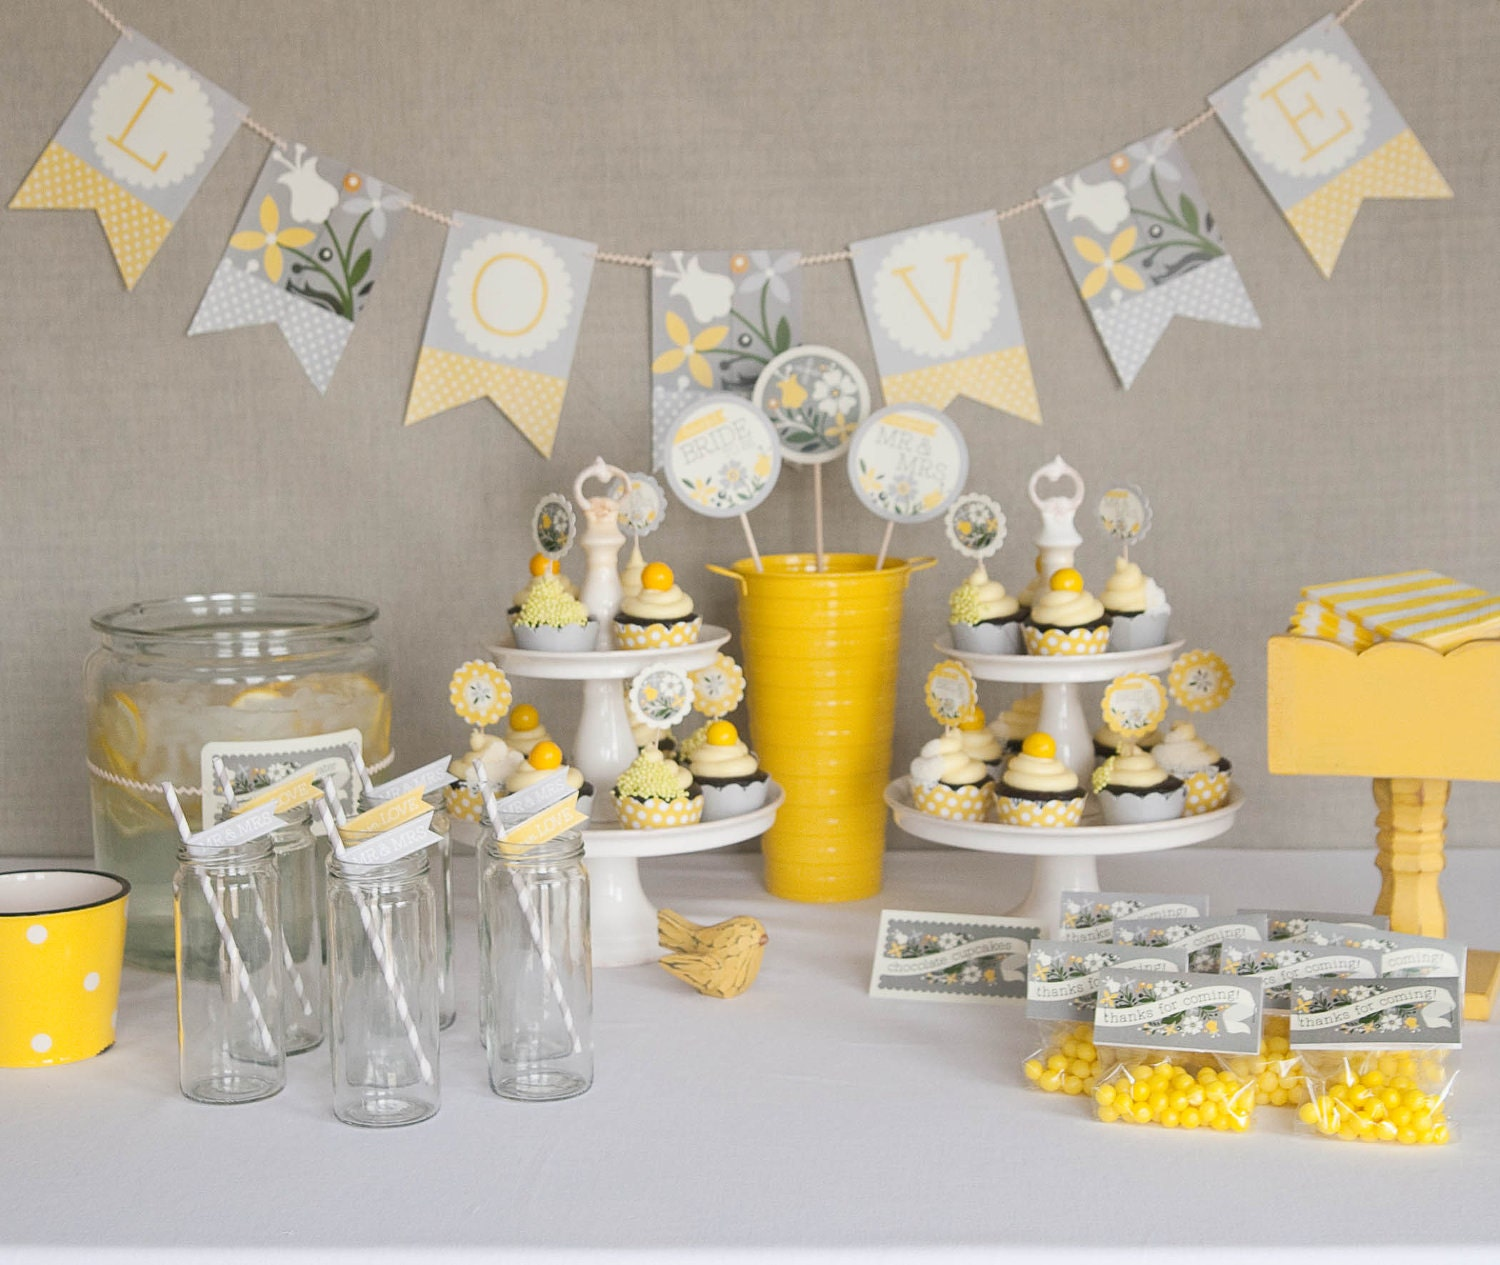 Popular items for bridal shower decorations on Etsy